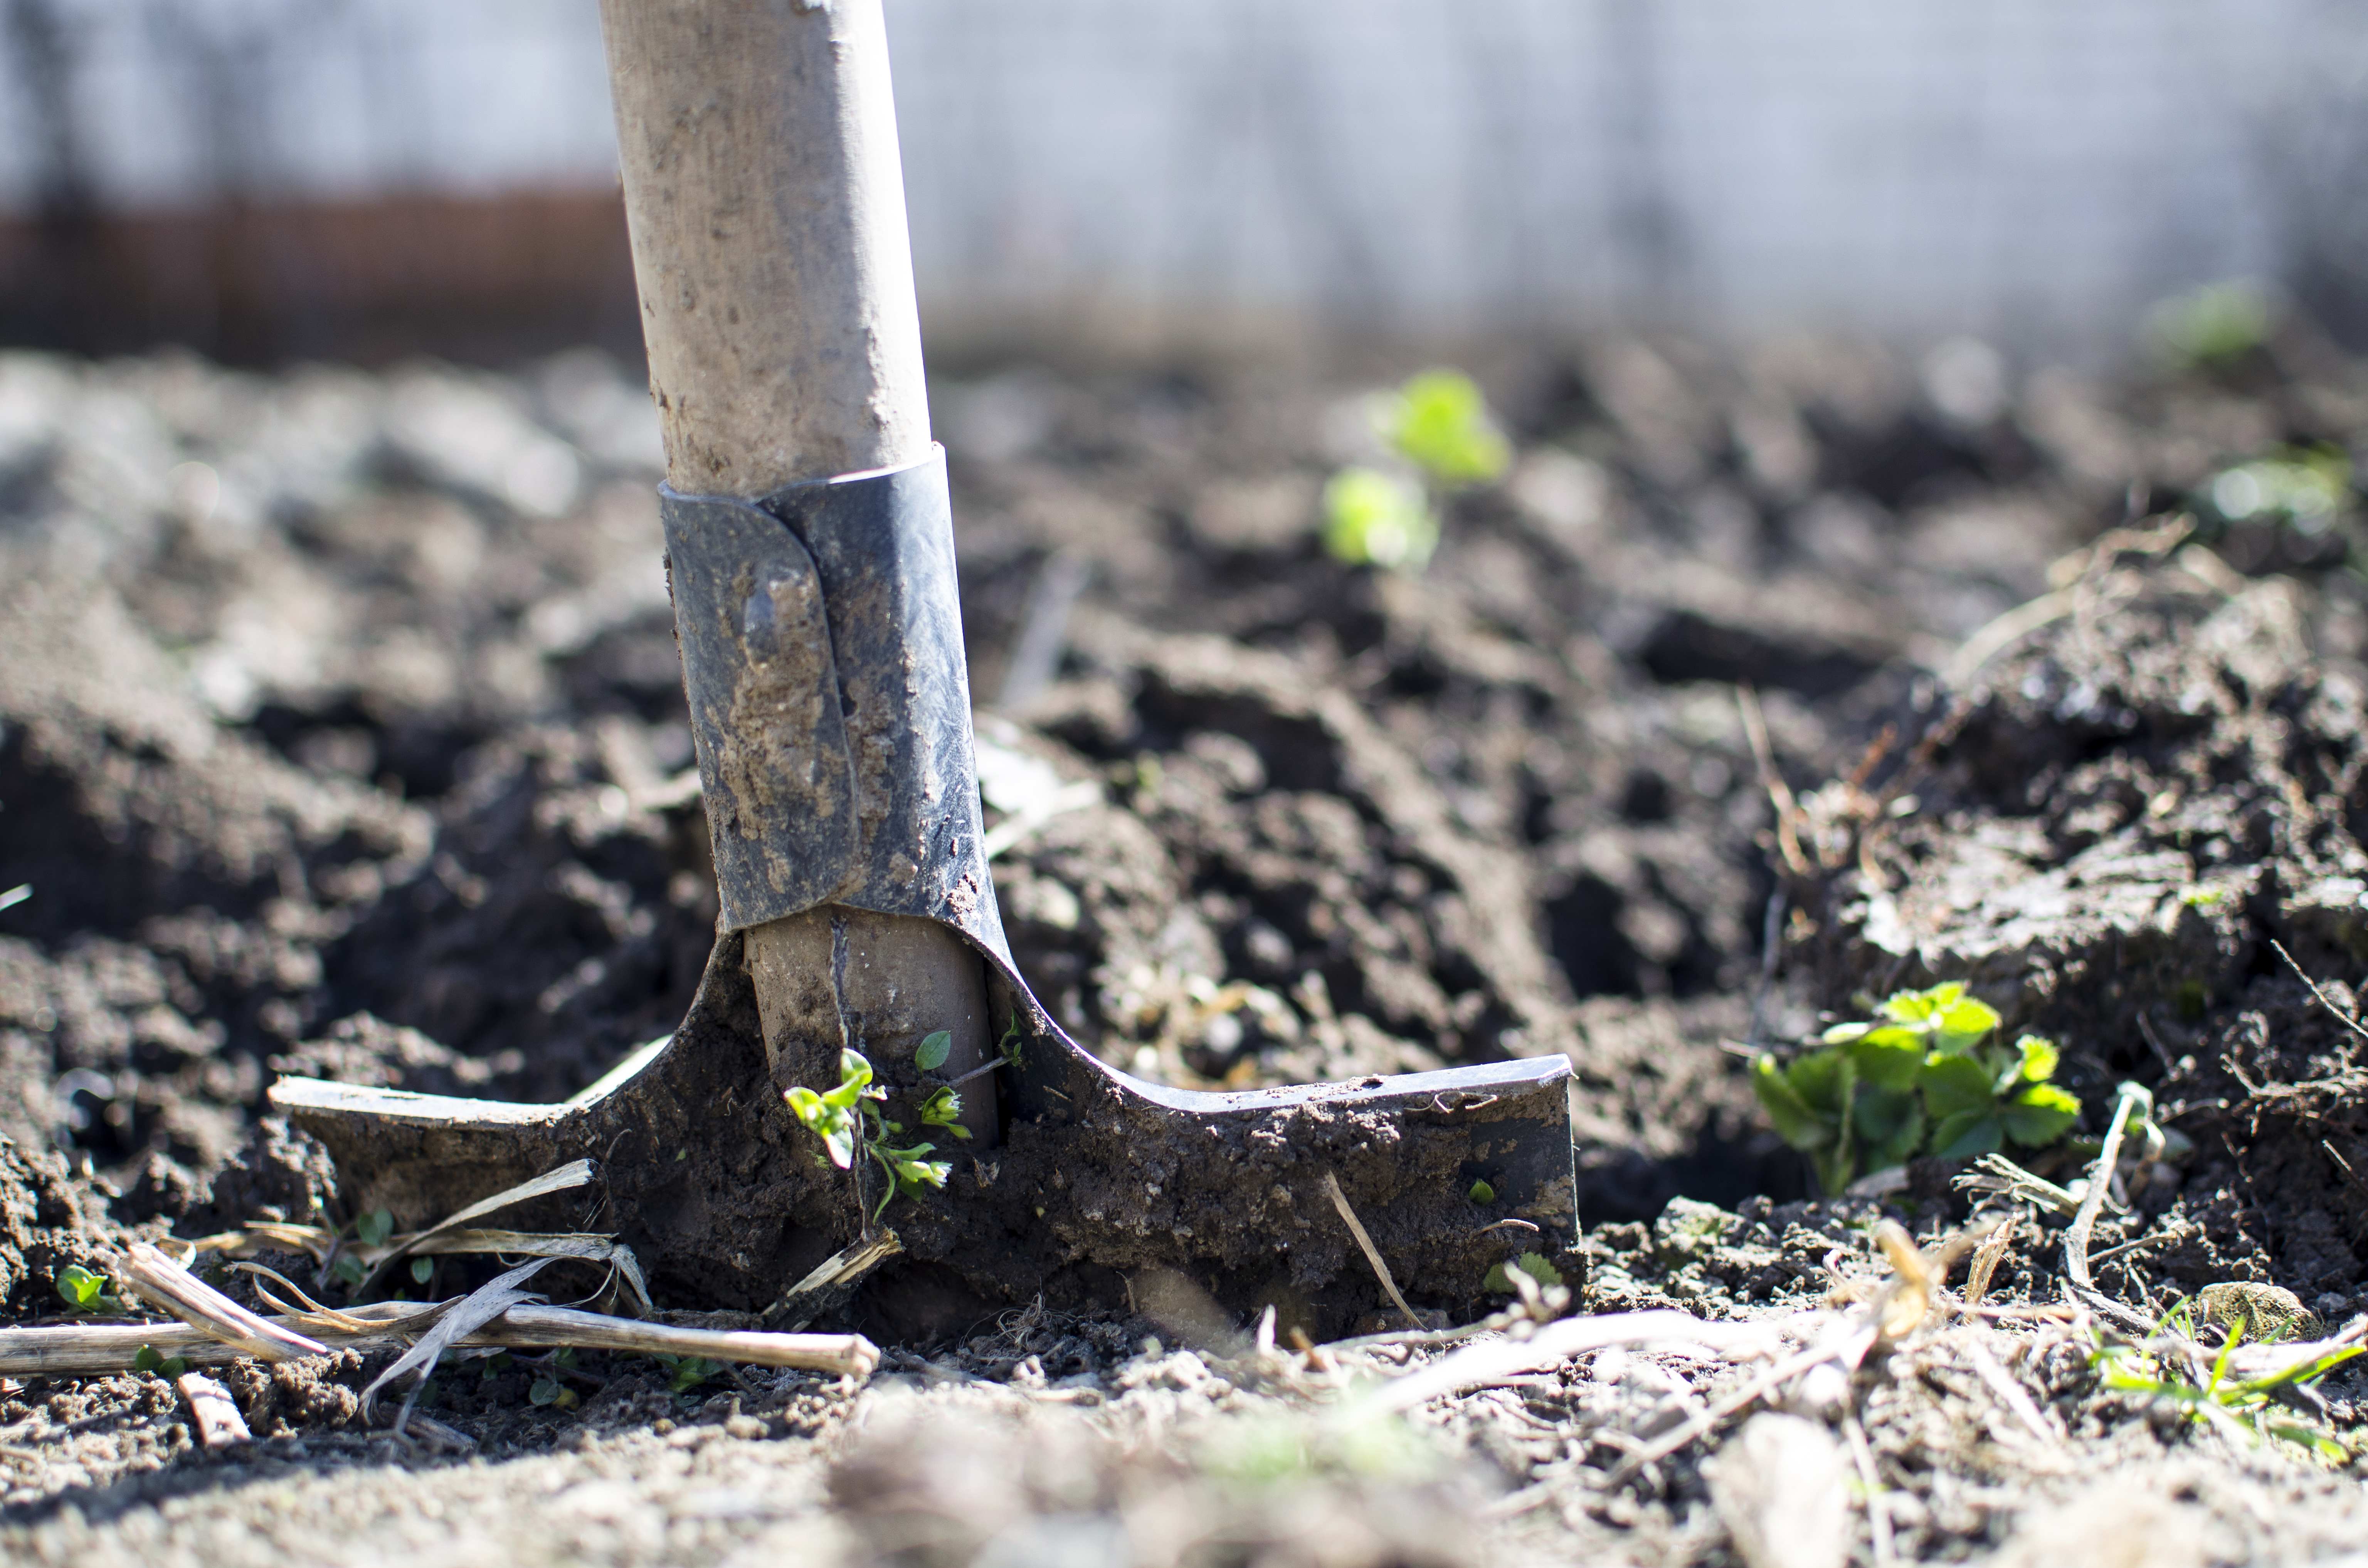 Soil Conservation in California: An analysis of the Healthy Soils Initiative